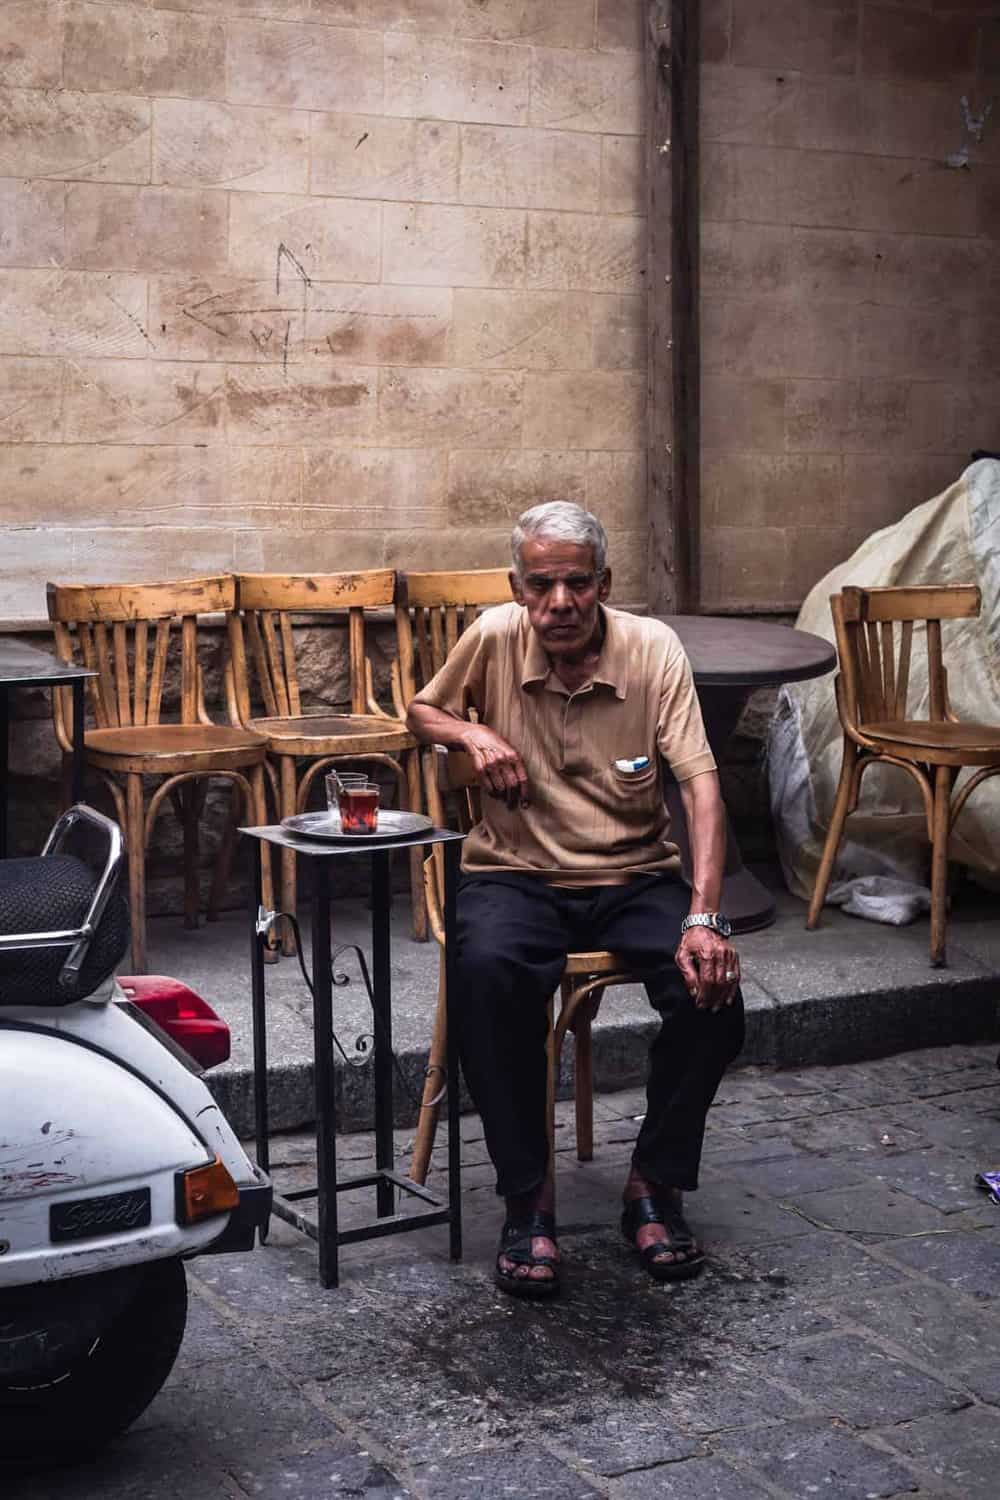 portrait shot of an old man sitting in a cafe in Old Cairo, posing for my camera.